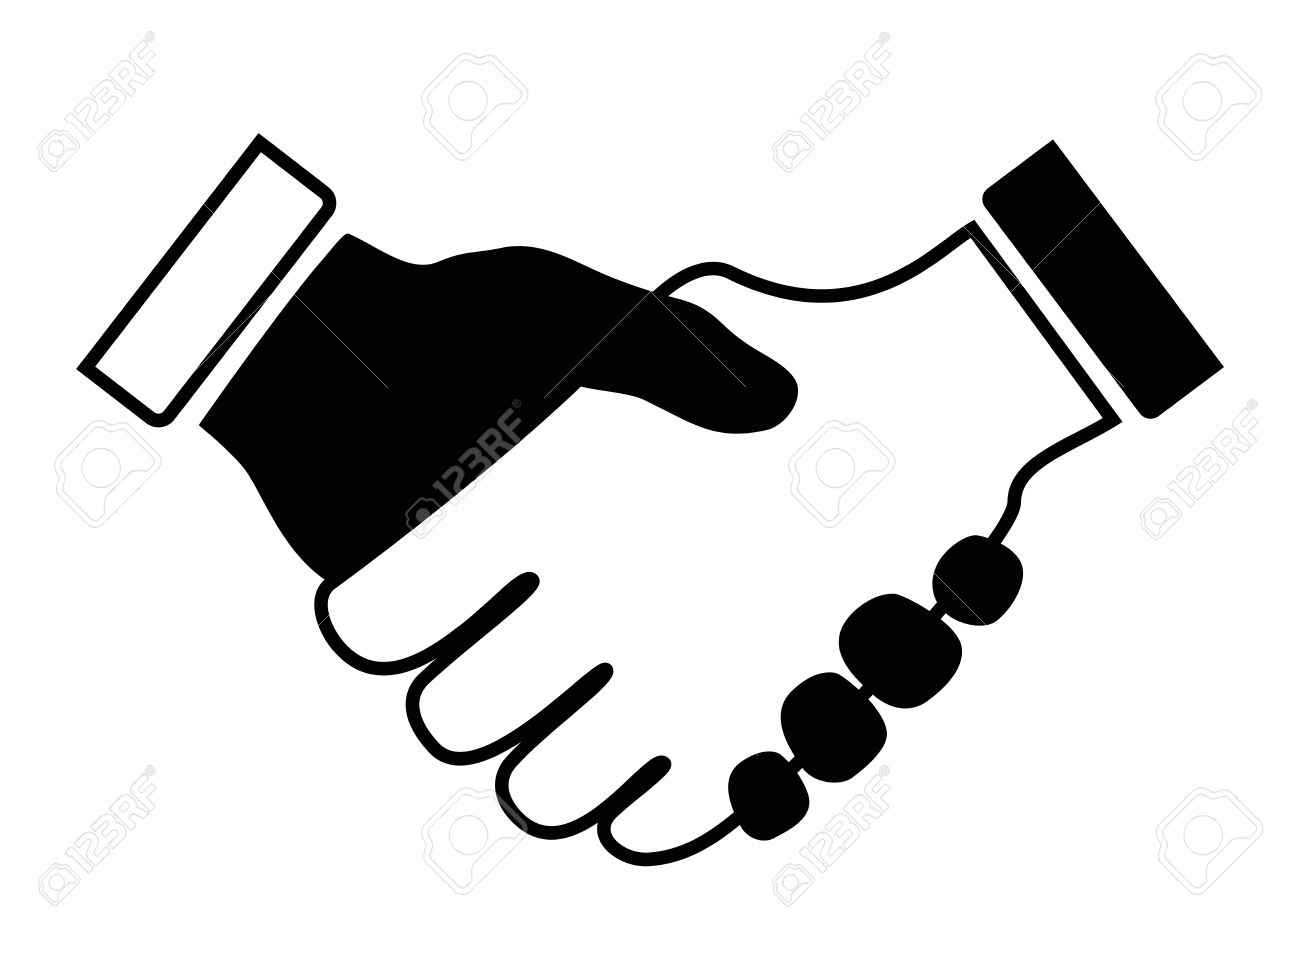 hand shake icon black and white royalty free cliparts vectors and rh 123rf com shaking hands animated clipart shaking hands animated clipart